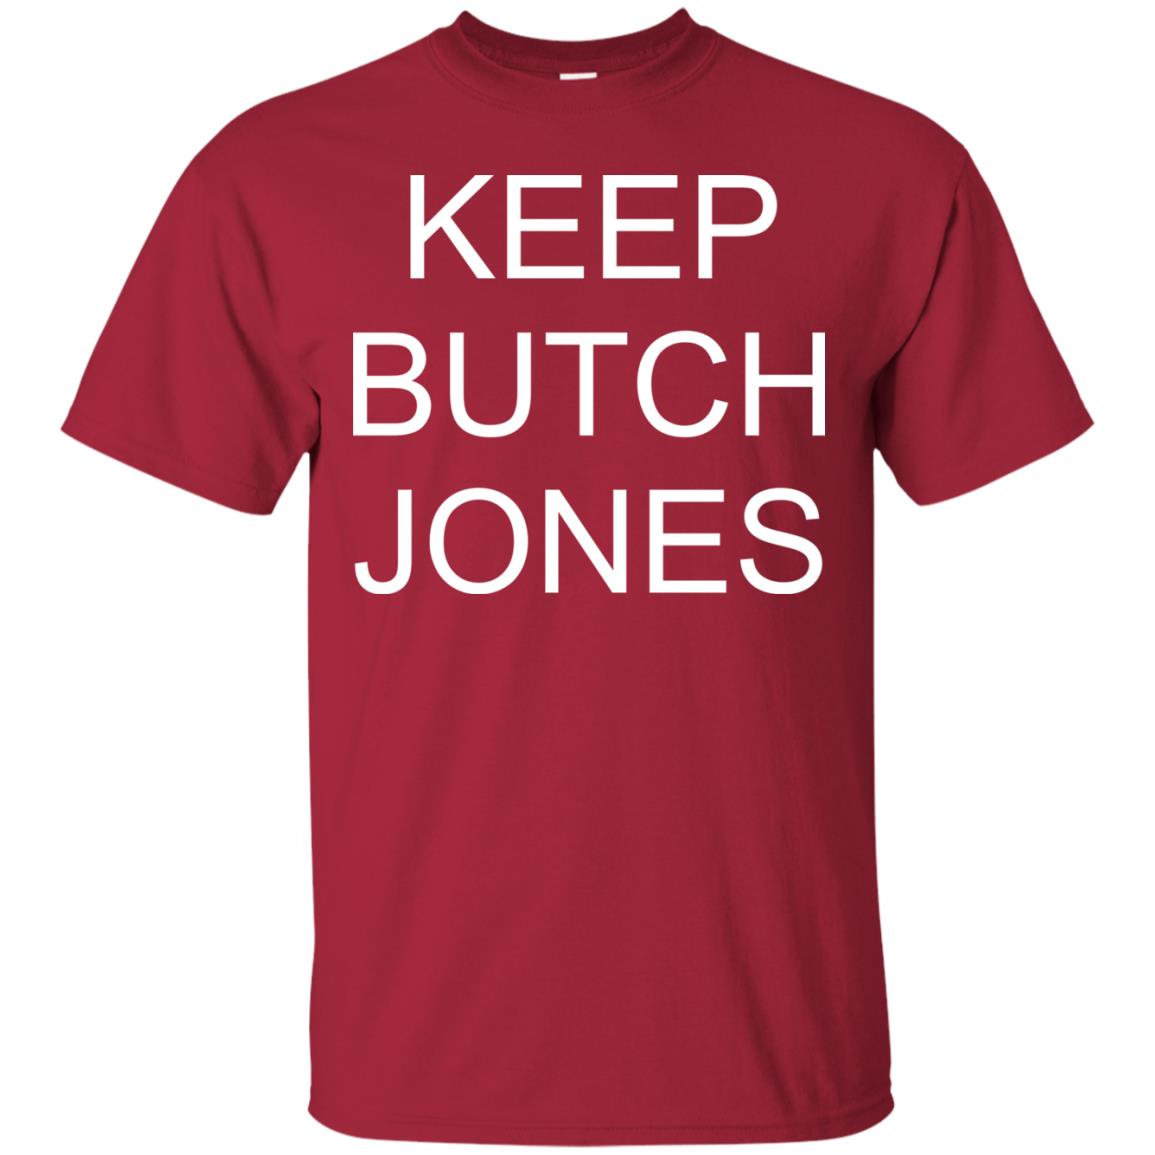 image 1430 - Keep Butch Jones shirt, sweater, long sleeve